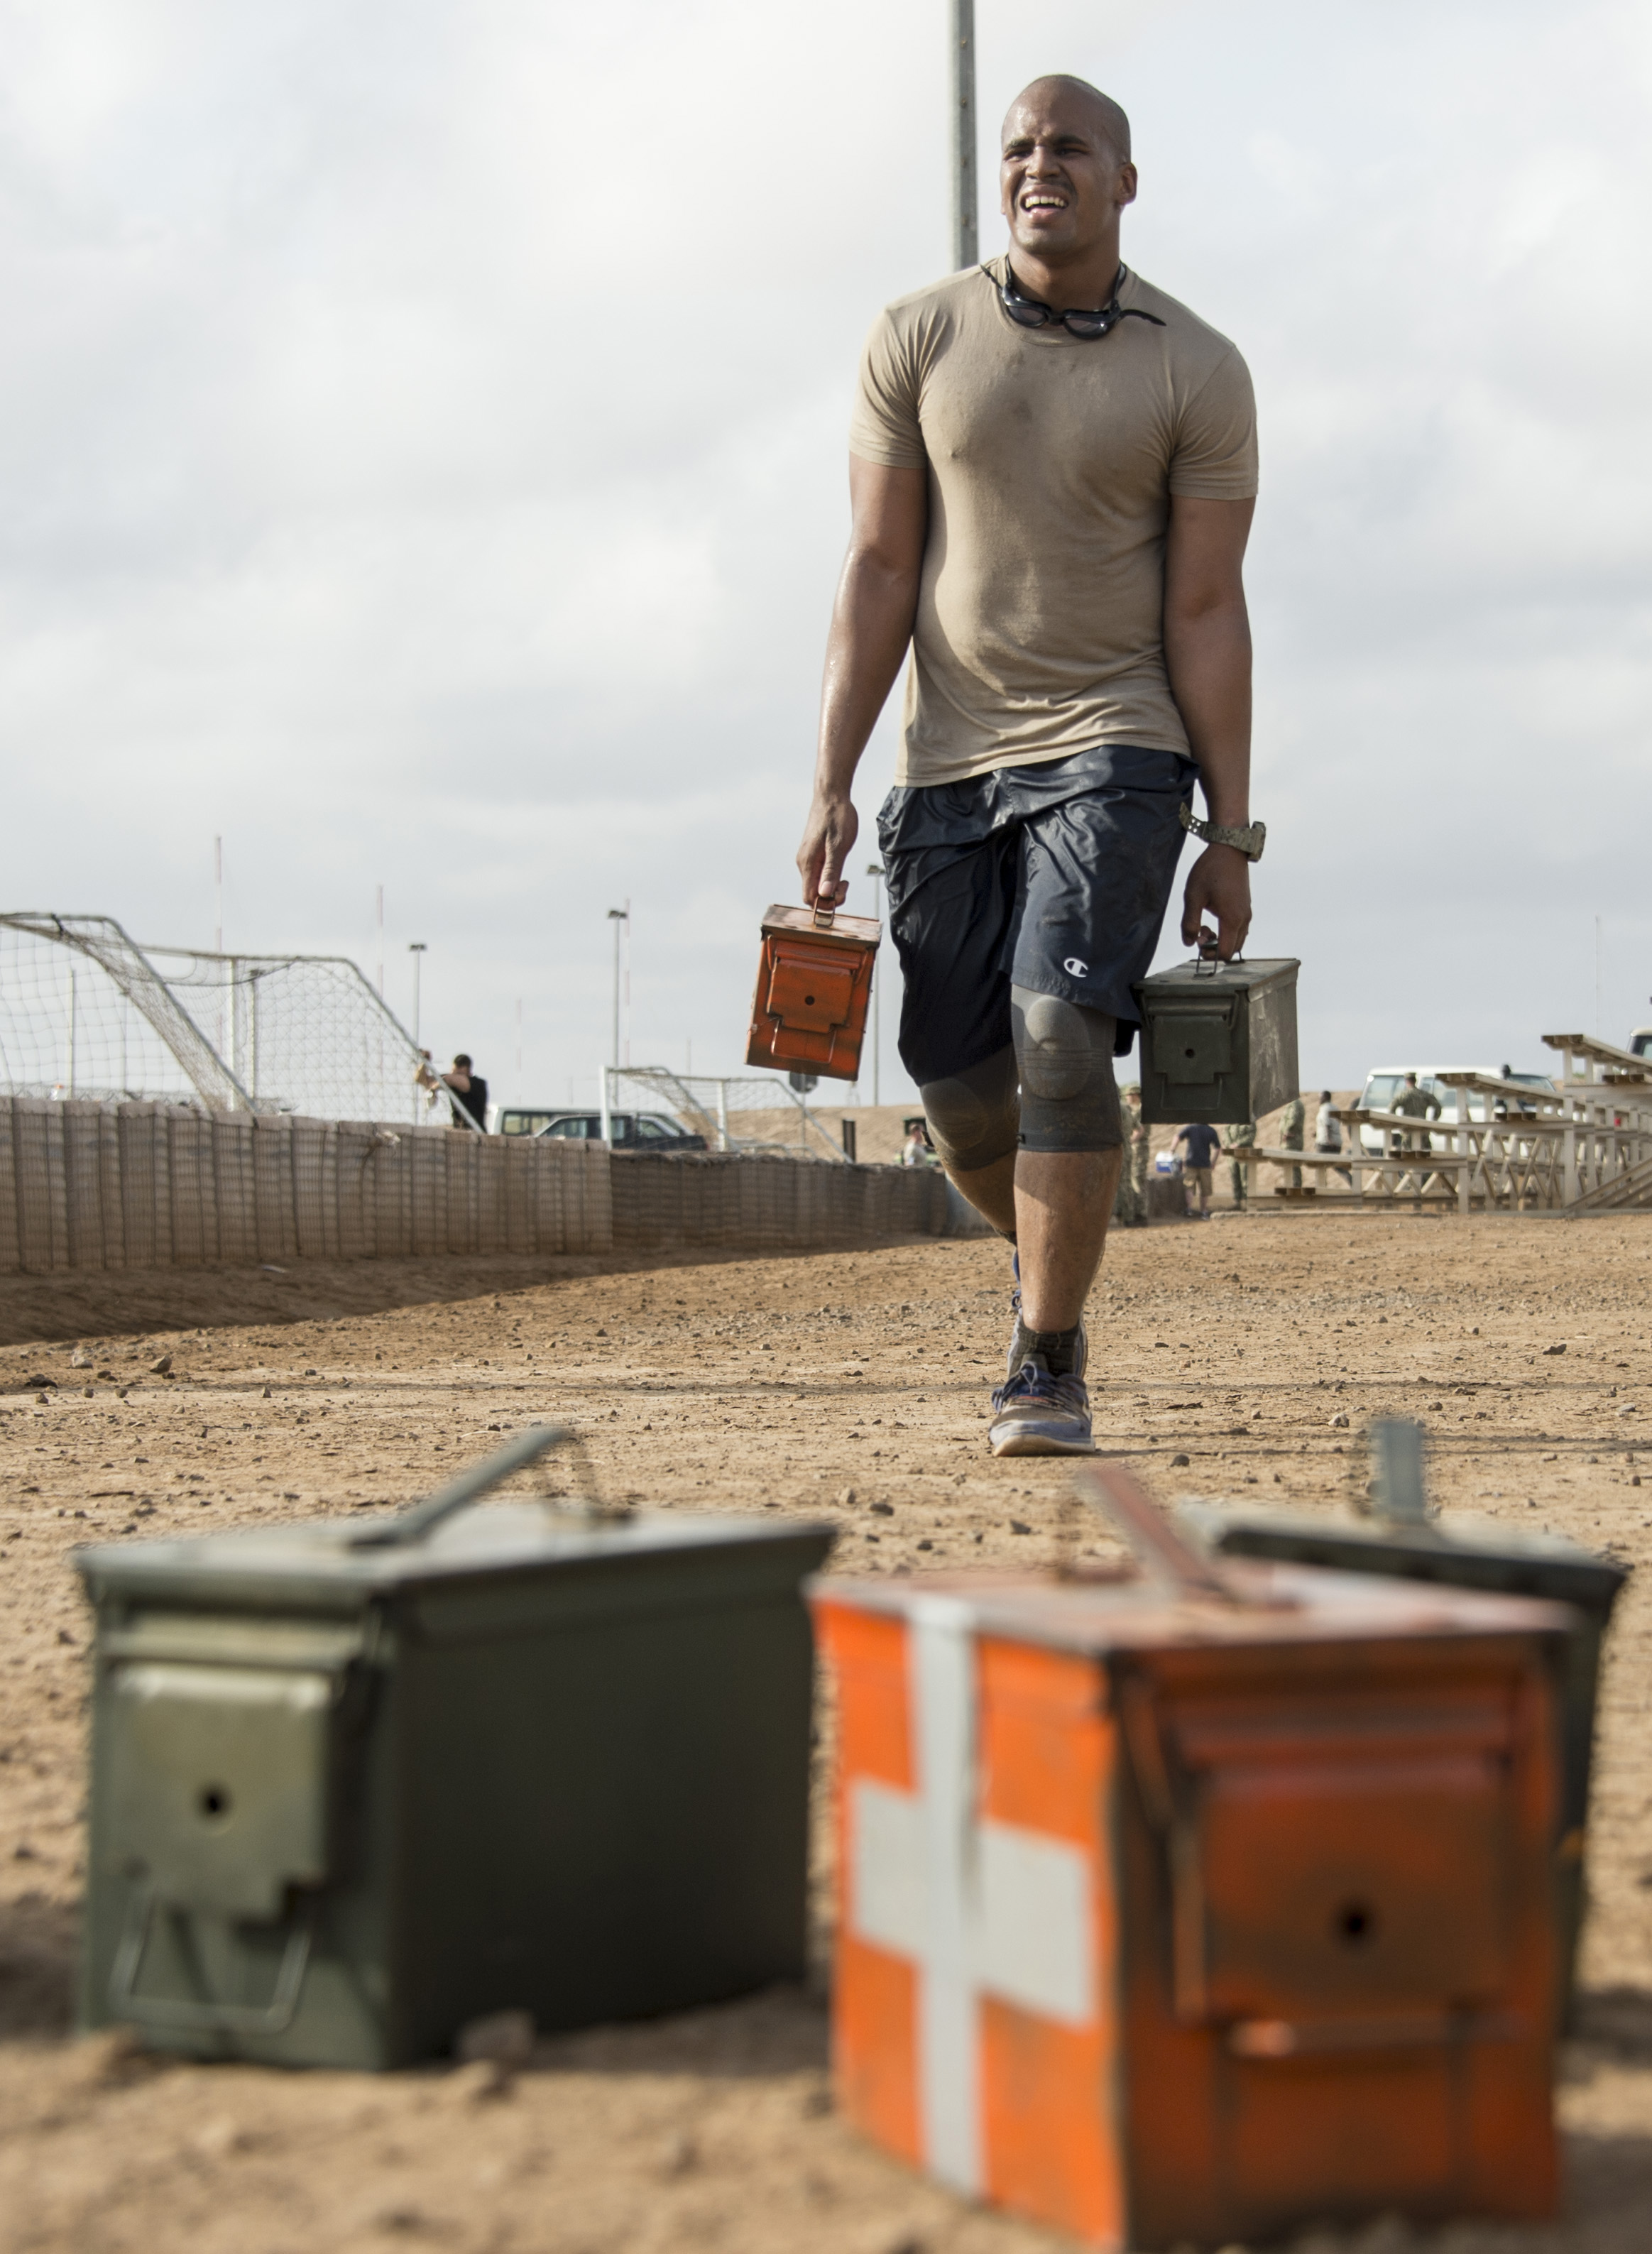 A U.S. service member participates in the ammunition can carry portion of the Joint Warrior Competition on Camp Lemonnier, Djibouti, March 25, 2017. Participants in the JWC test themselves physically in various events including a 100-yard ammunition can carry. (U.S. Air National Guard photo by Staff Sgt. Christian Jadot)